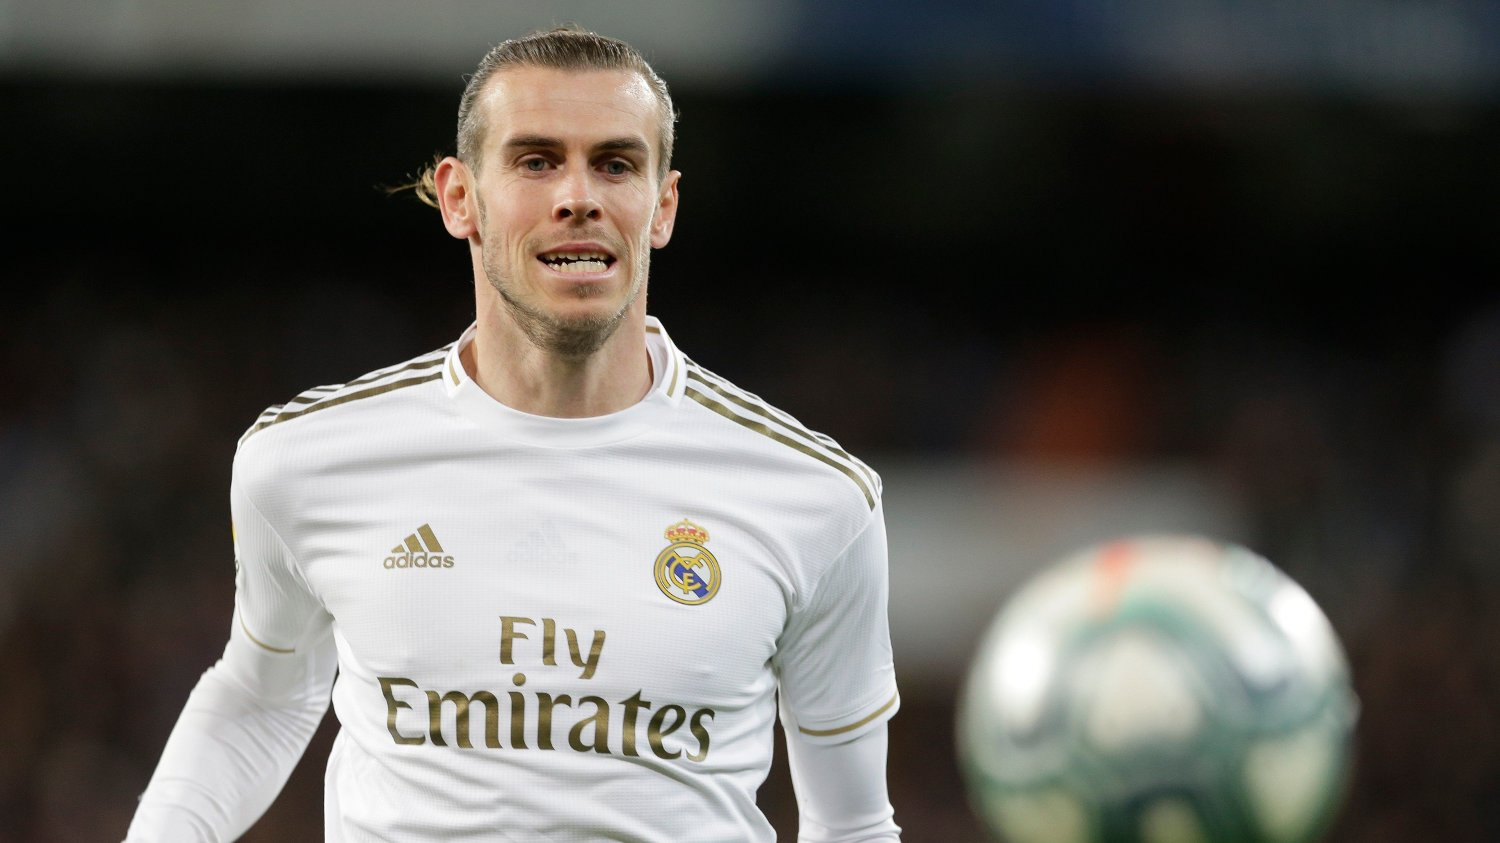 Real Madrid's Gareth Bale controls the ball during a Spanish La Liga soccer match between Real Madrid and Athletic Bilbao at the Santiago Bernabeu stadium in Madrid, Spain, Sunday Dec. 22, 2019.